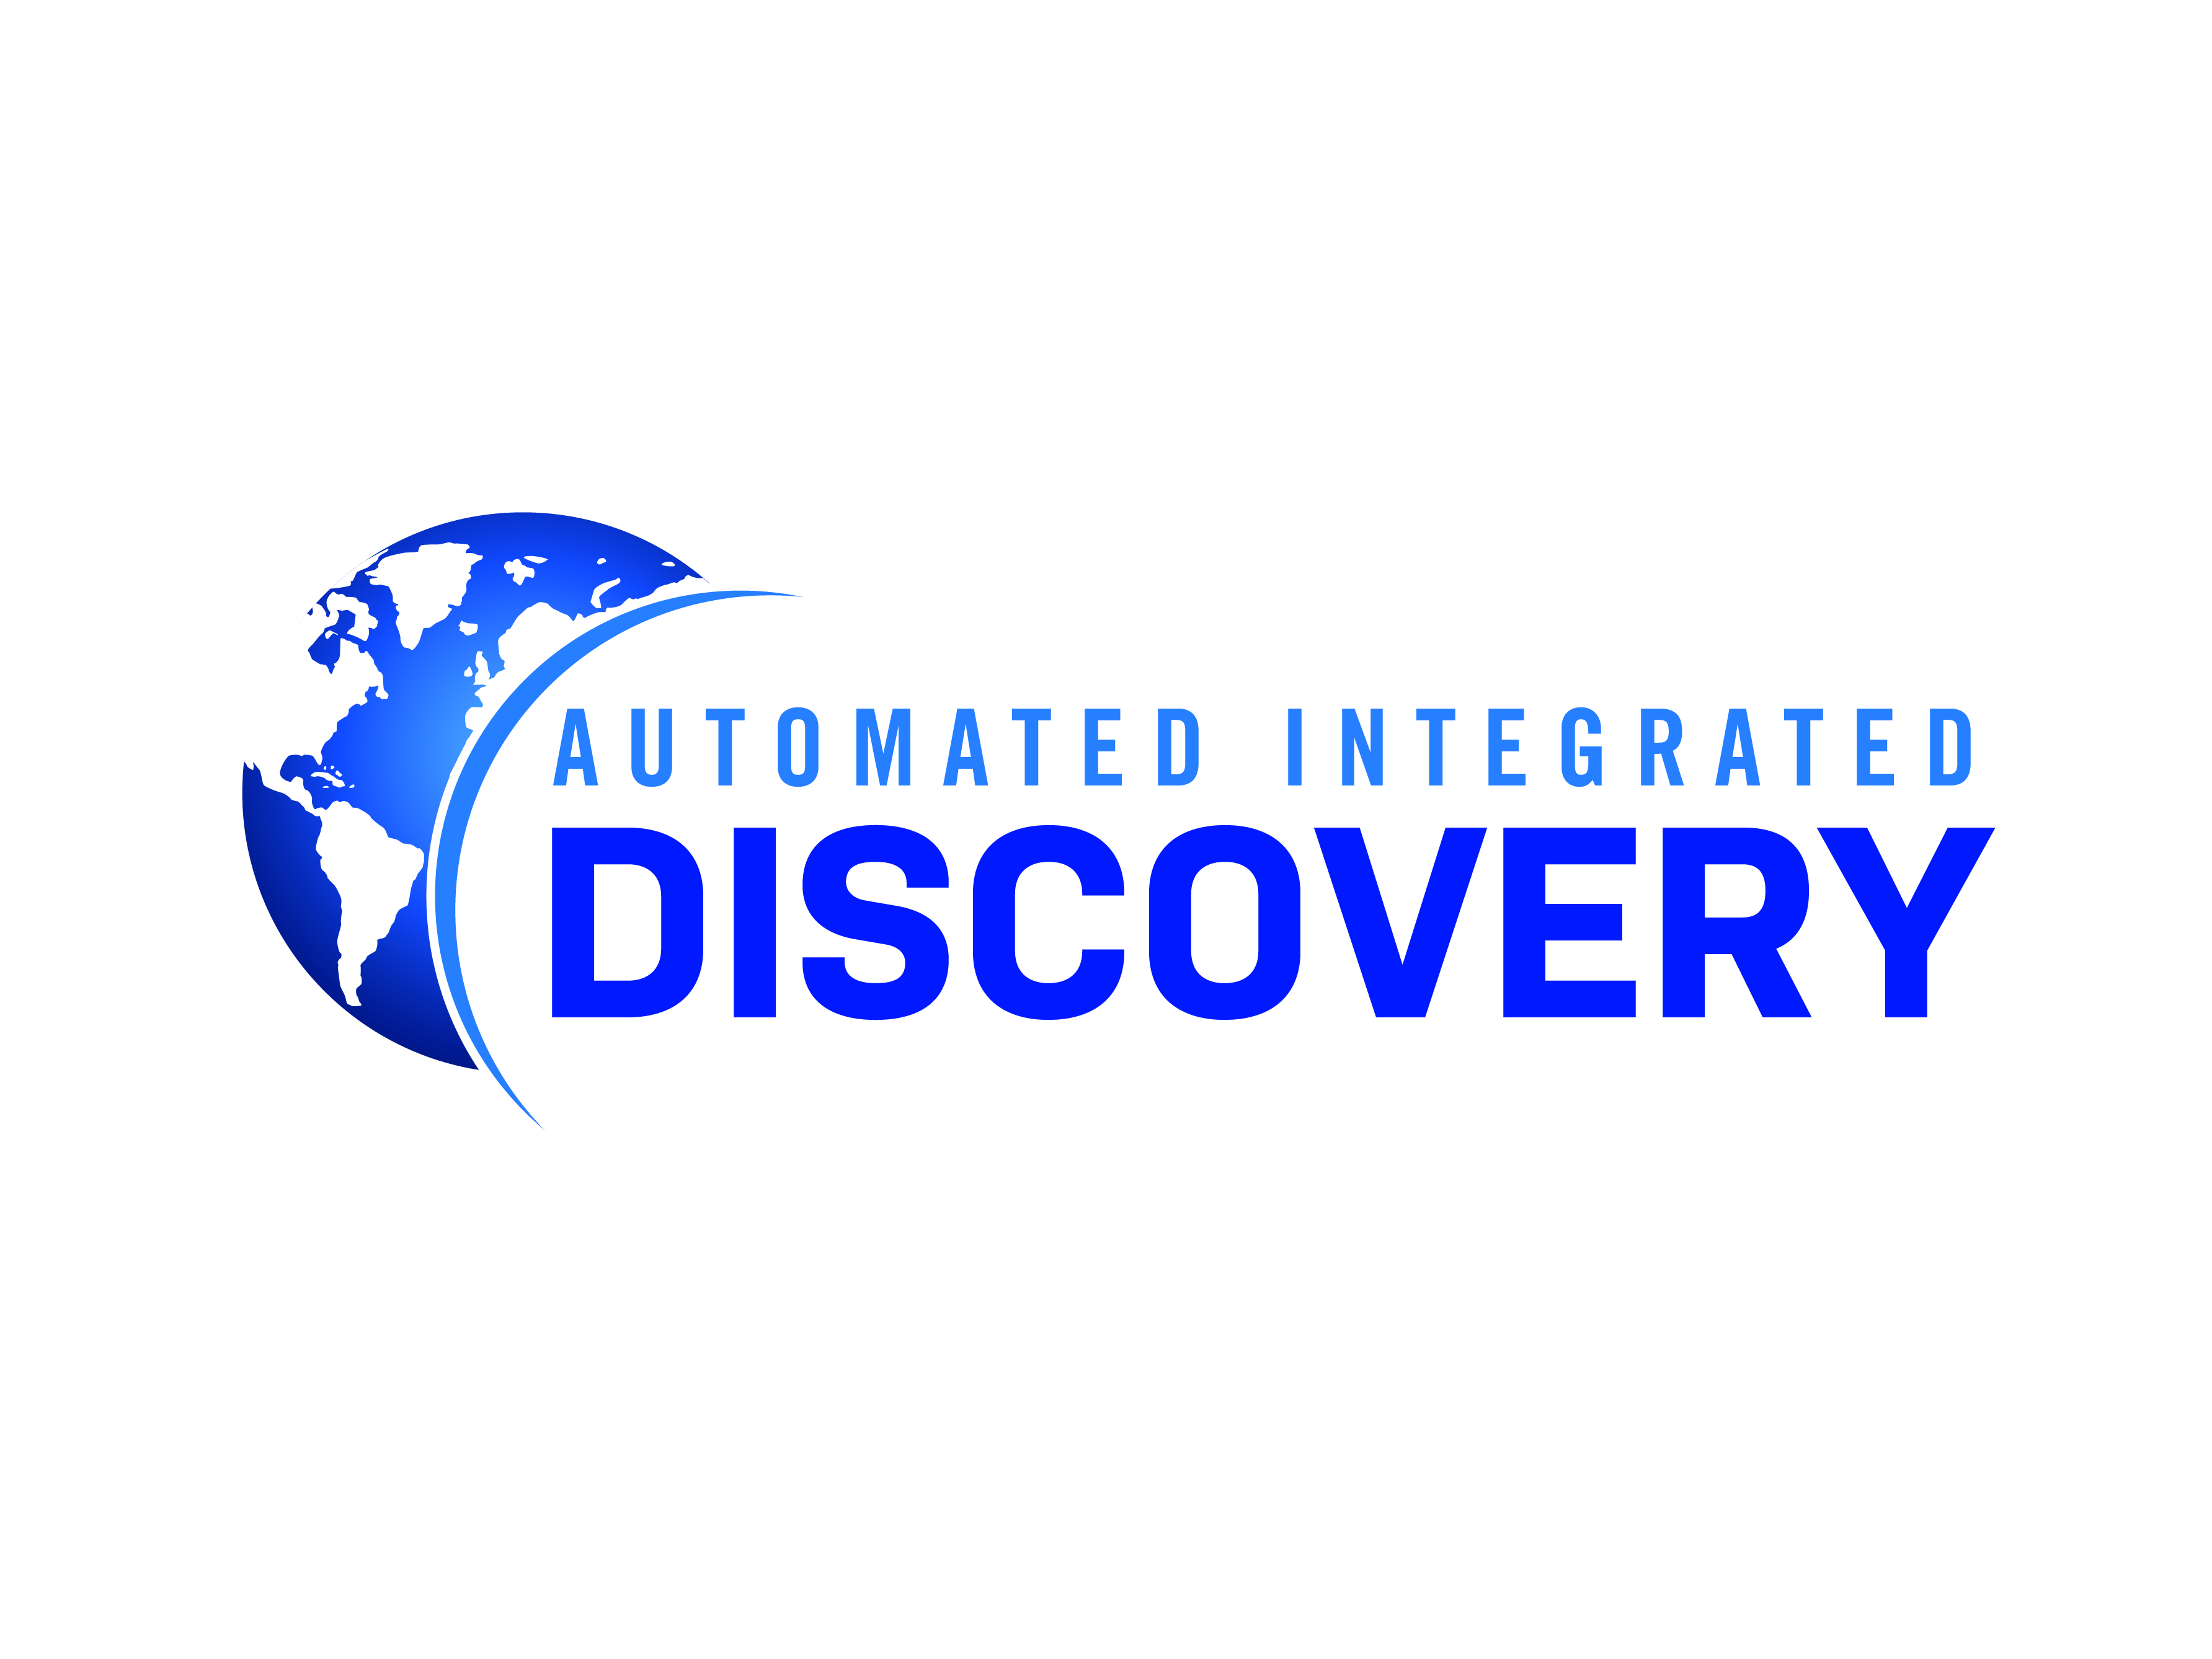 Logo Design by Rob King - Entry No. 43 in the Logo Design Contest Automated Integrated Discovery  Logo Design.